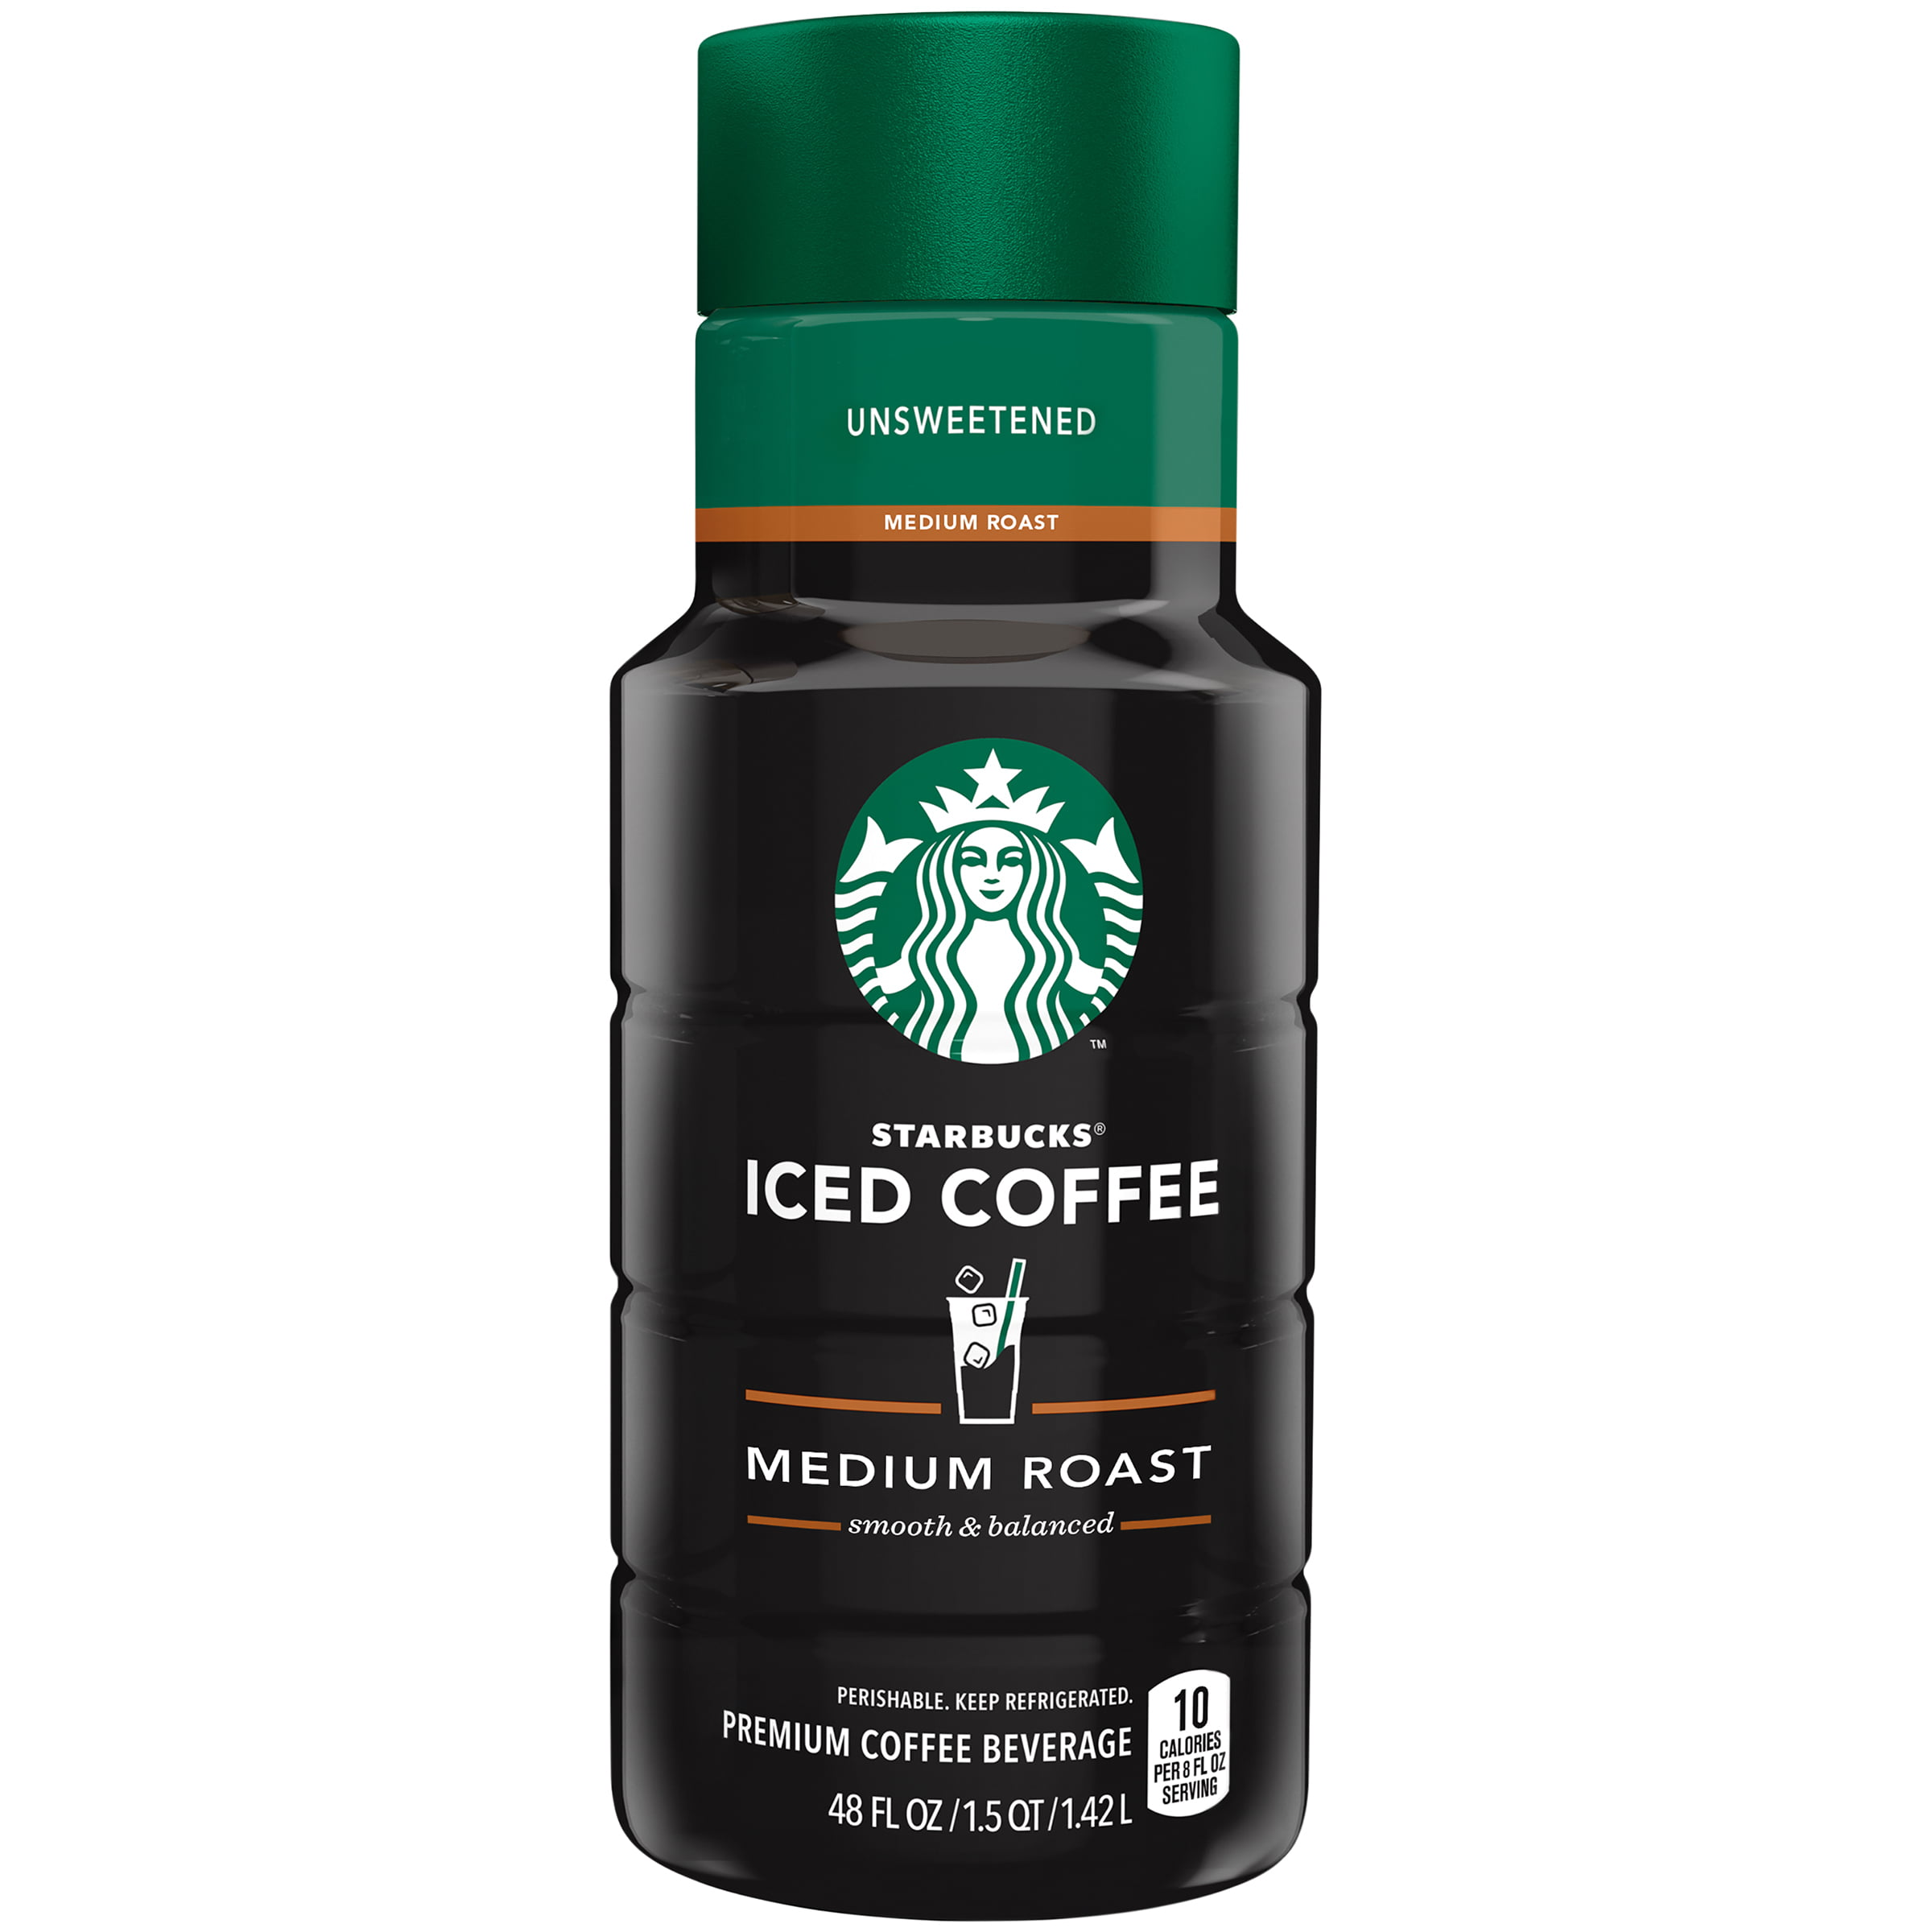 Image result for starbucks iced coffee walmart